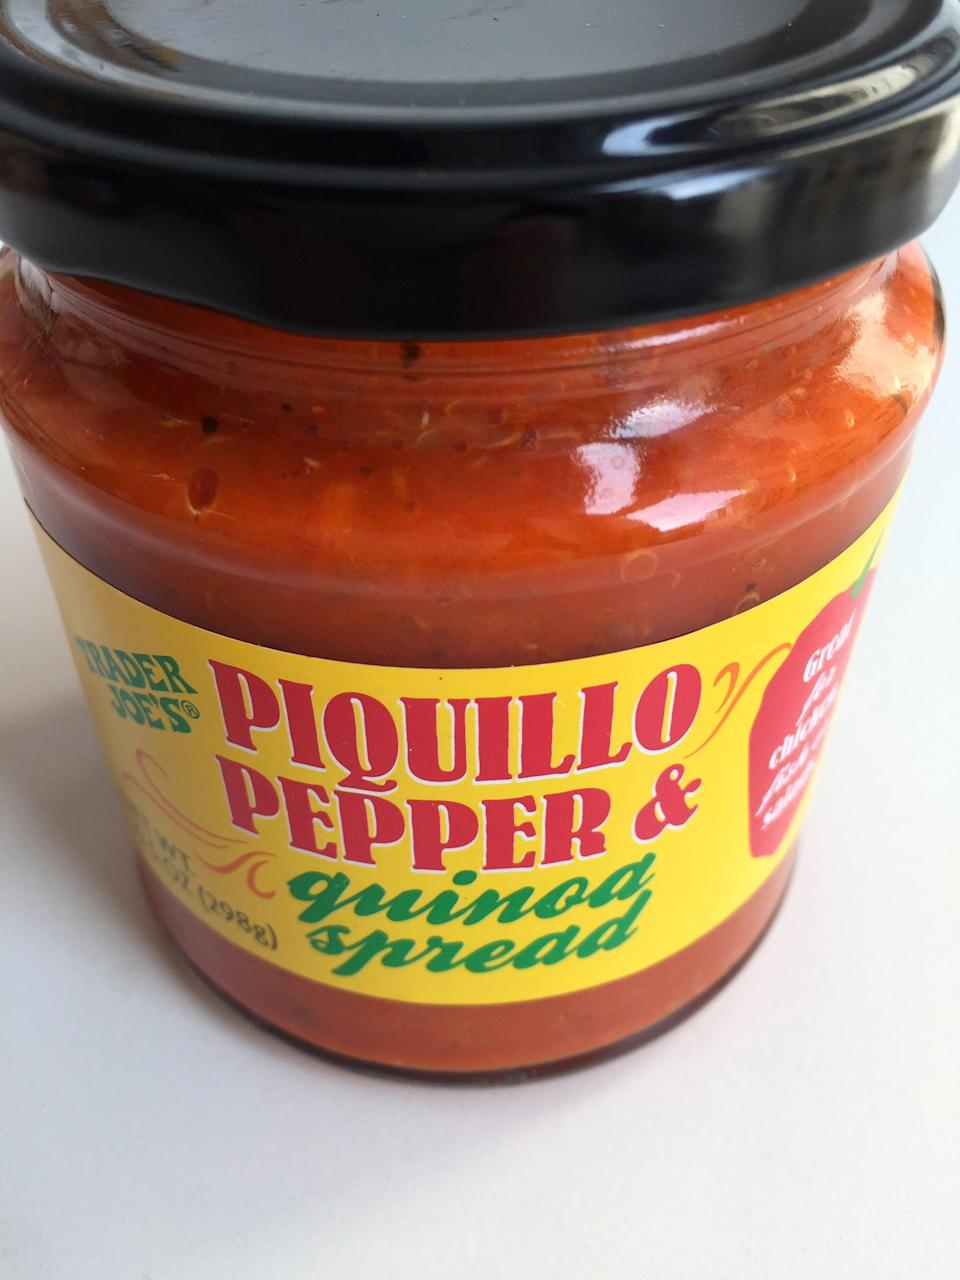 """<p>If you are a fan of TJ's roasted red pepper spread, then get your hands on this <a href=""""http://www.traderjoes.com/digin/post/piquillo-pepper-quinoa-spread"""" class=""""link rapid-noclick-resp"""" rel=""""nofollow noopener"""" target=""""_blank"""" data-ylk=""""slk:Piquillo Pepper & Quinoa Spread"""">Piquillo Pepper & Quinoa Spread</a>, which is more tomato-y than peppery in flavor and has a nice texture from the quinoa. </p>"""